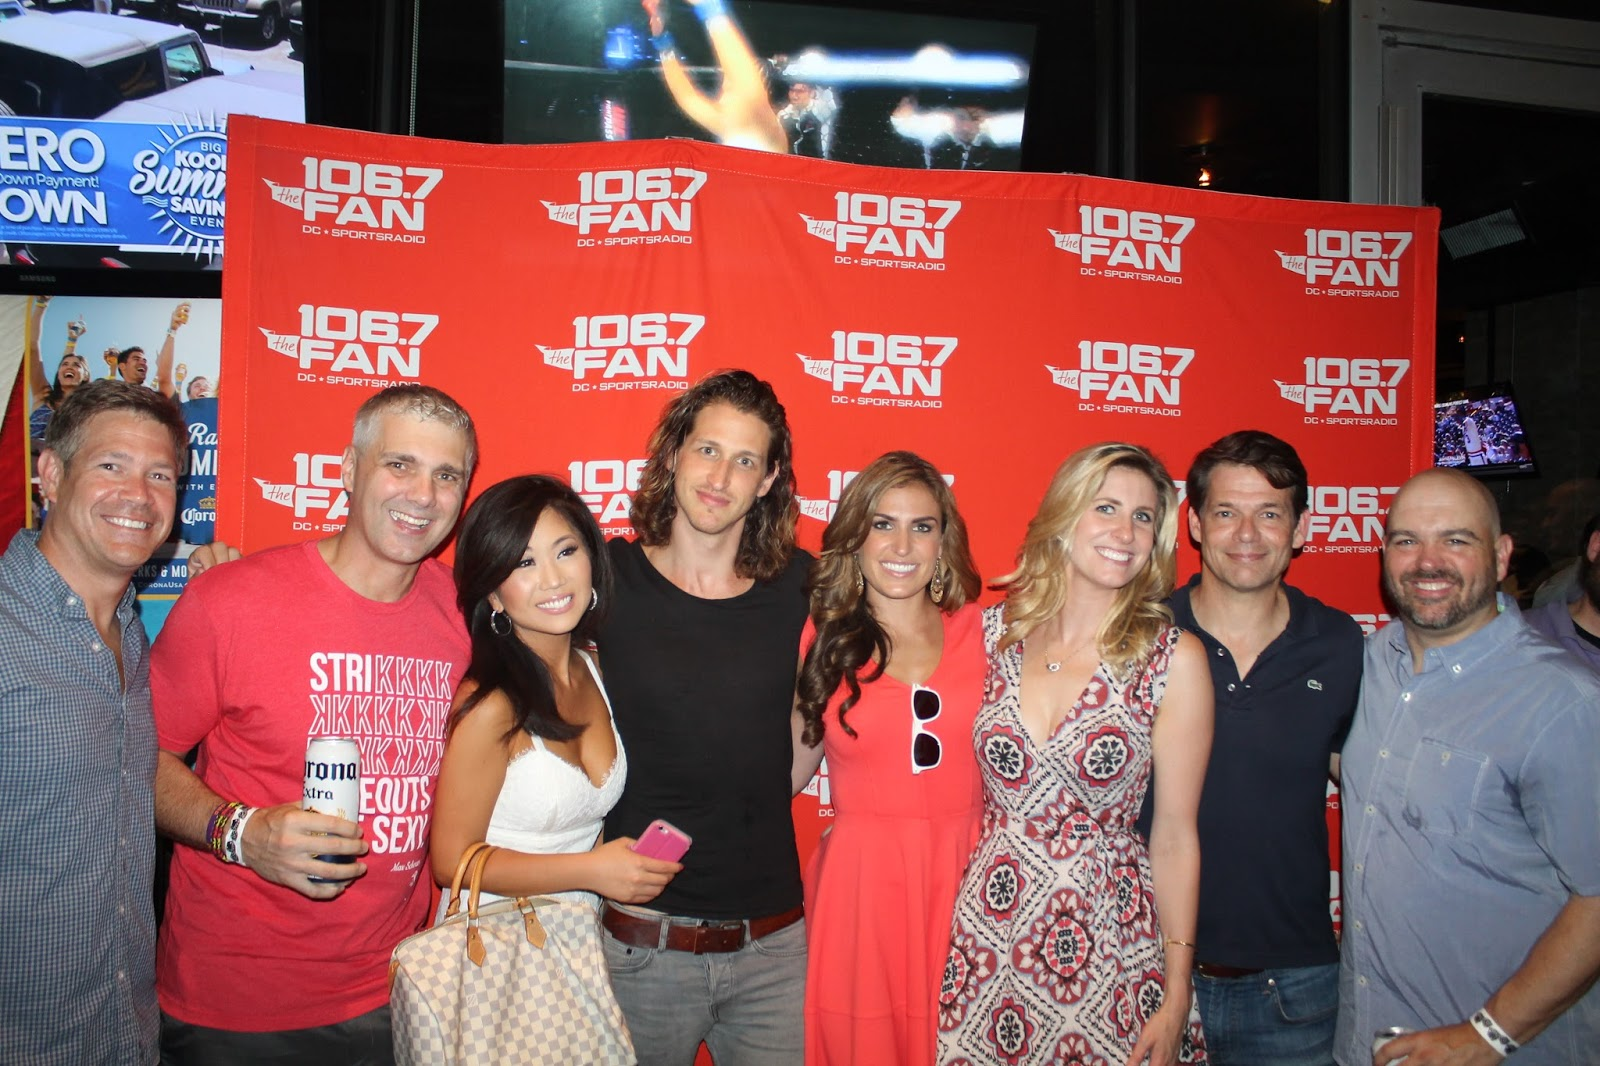 Sports junkies summer dress party